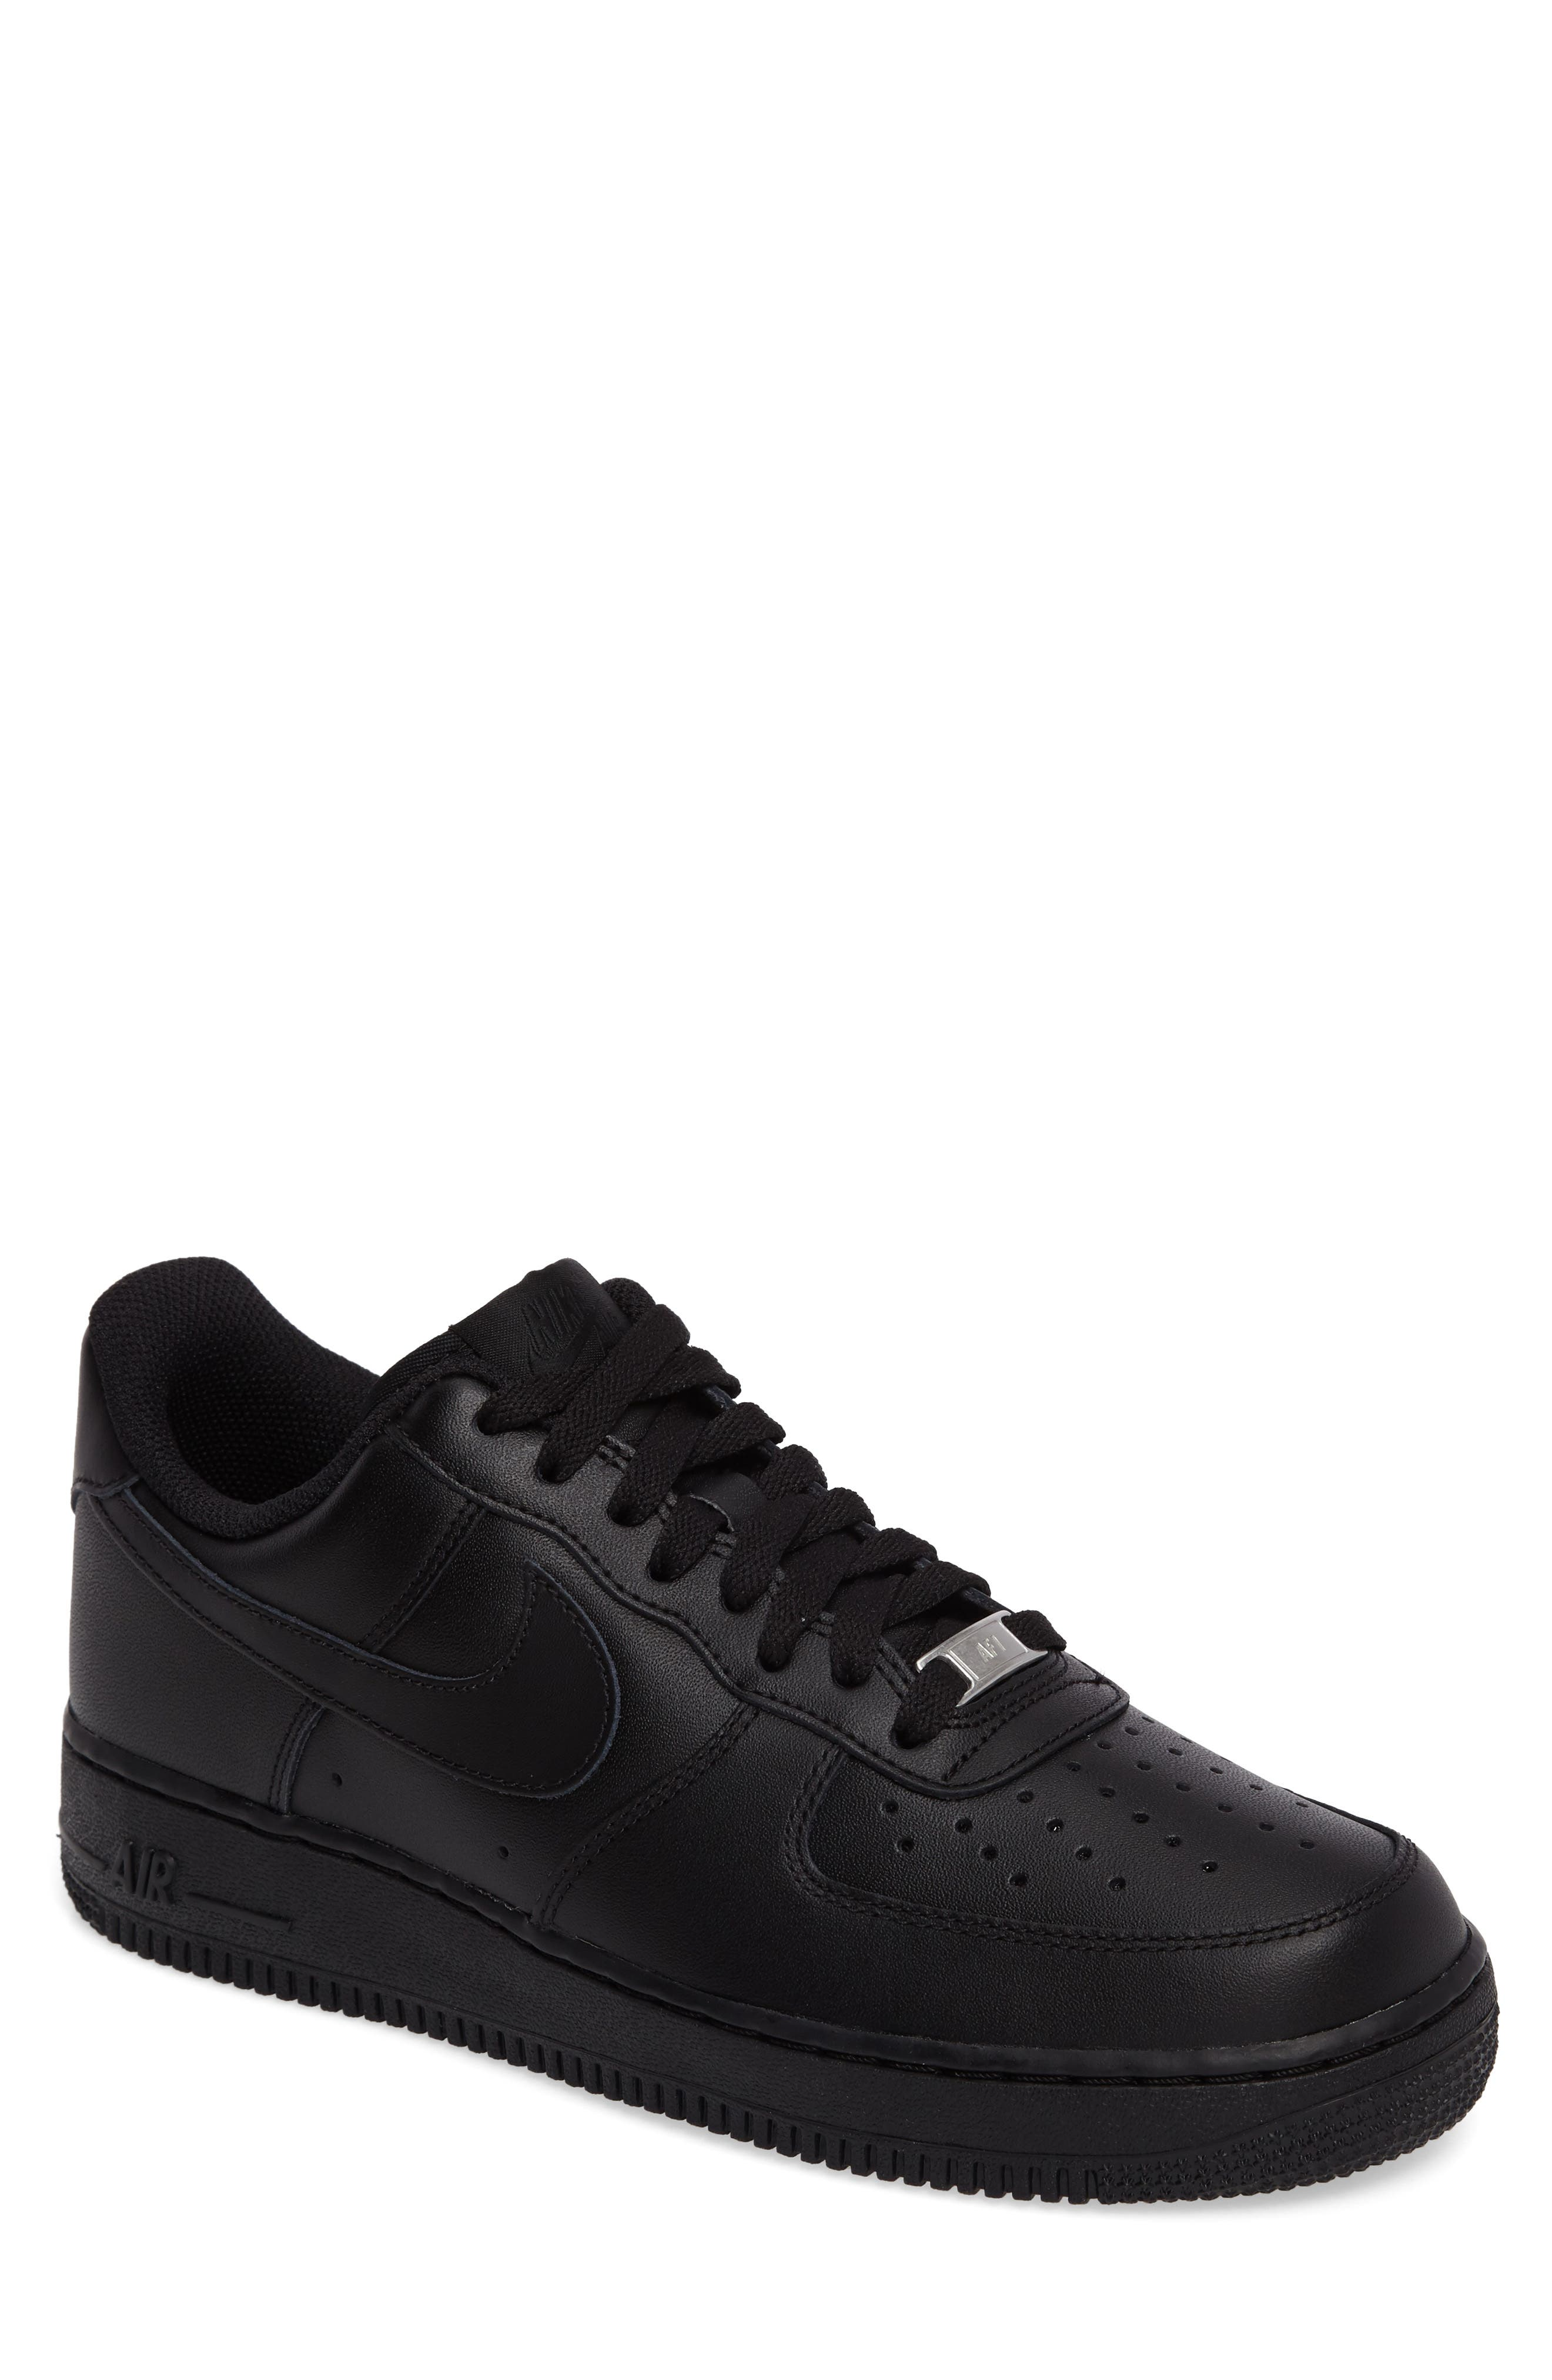 Air Force 1 '07 Sneaker,                             Main thumbnail 1, color,                             Black/ Black